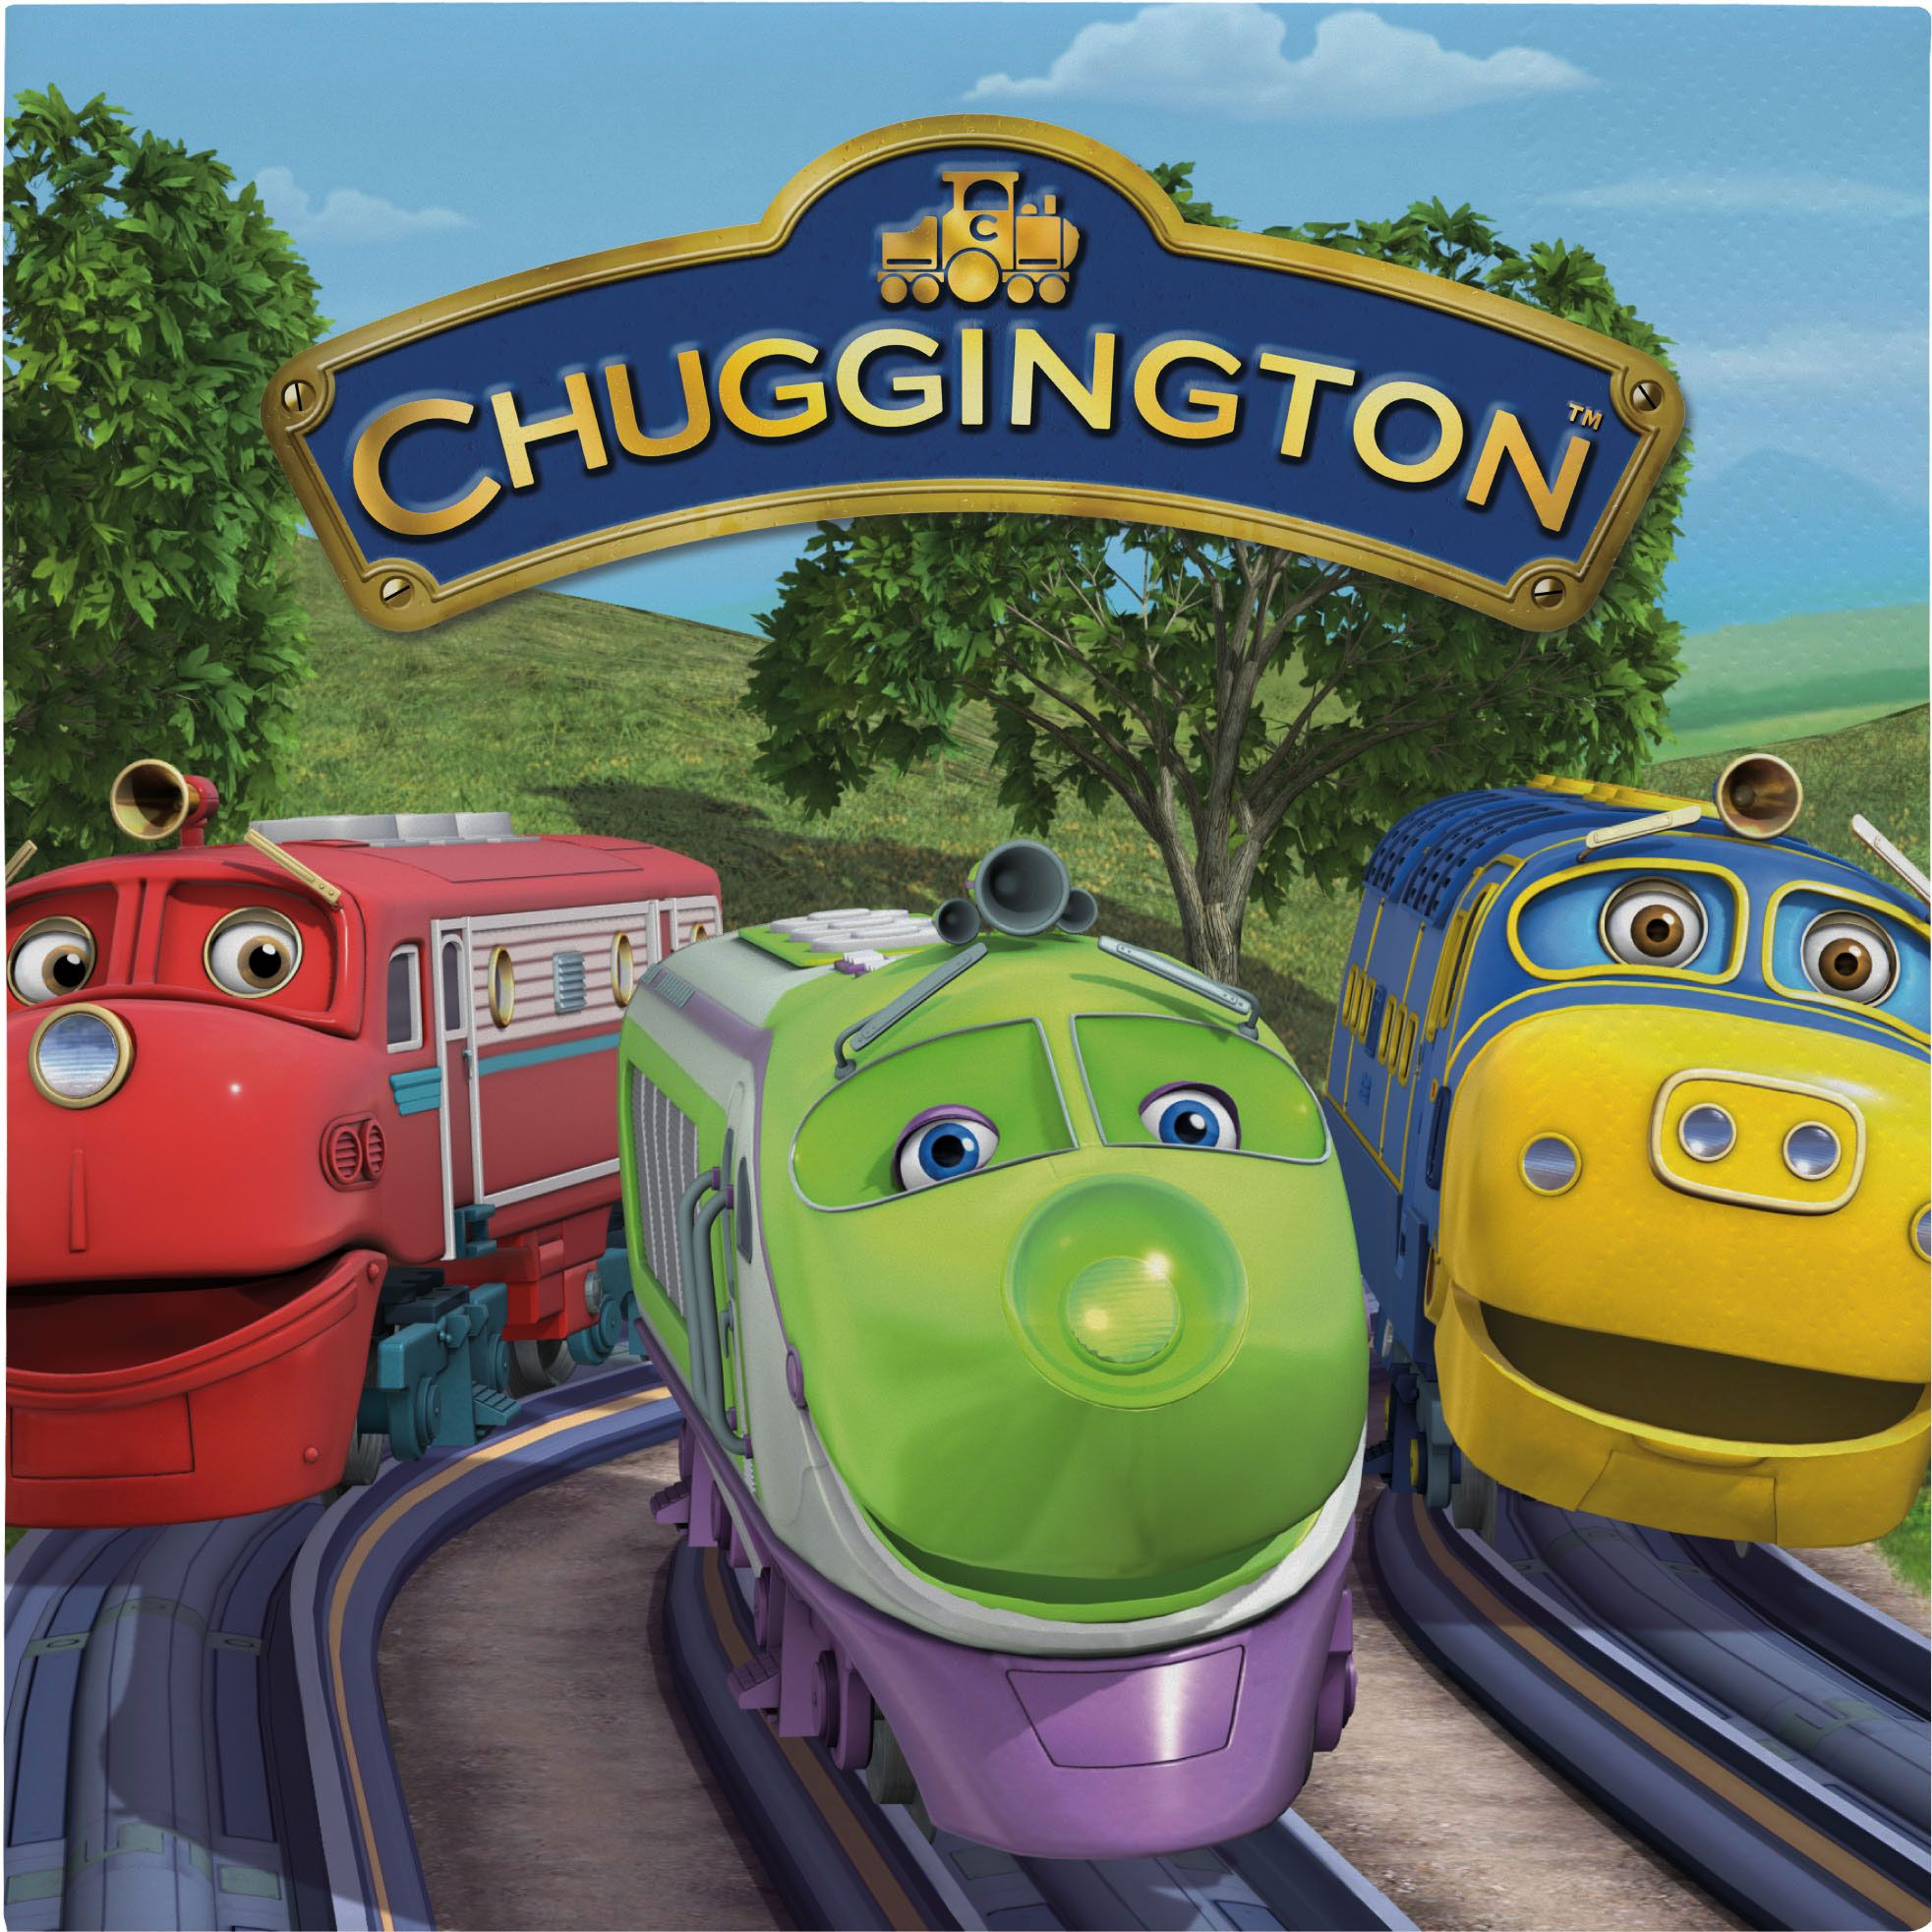 chuggington | Chuggington | Pinterest